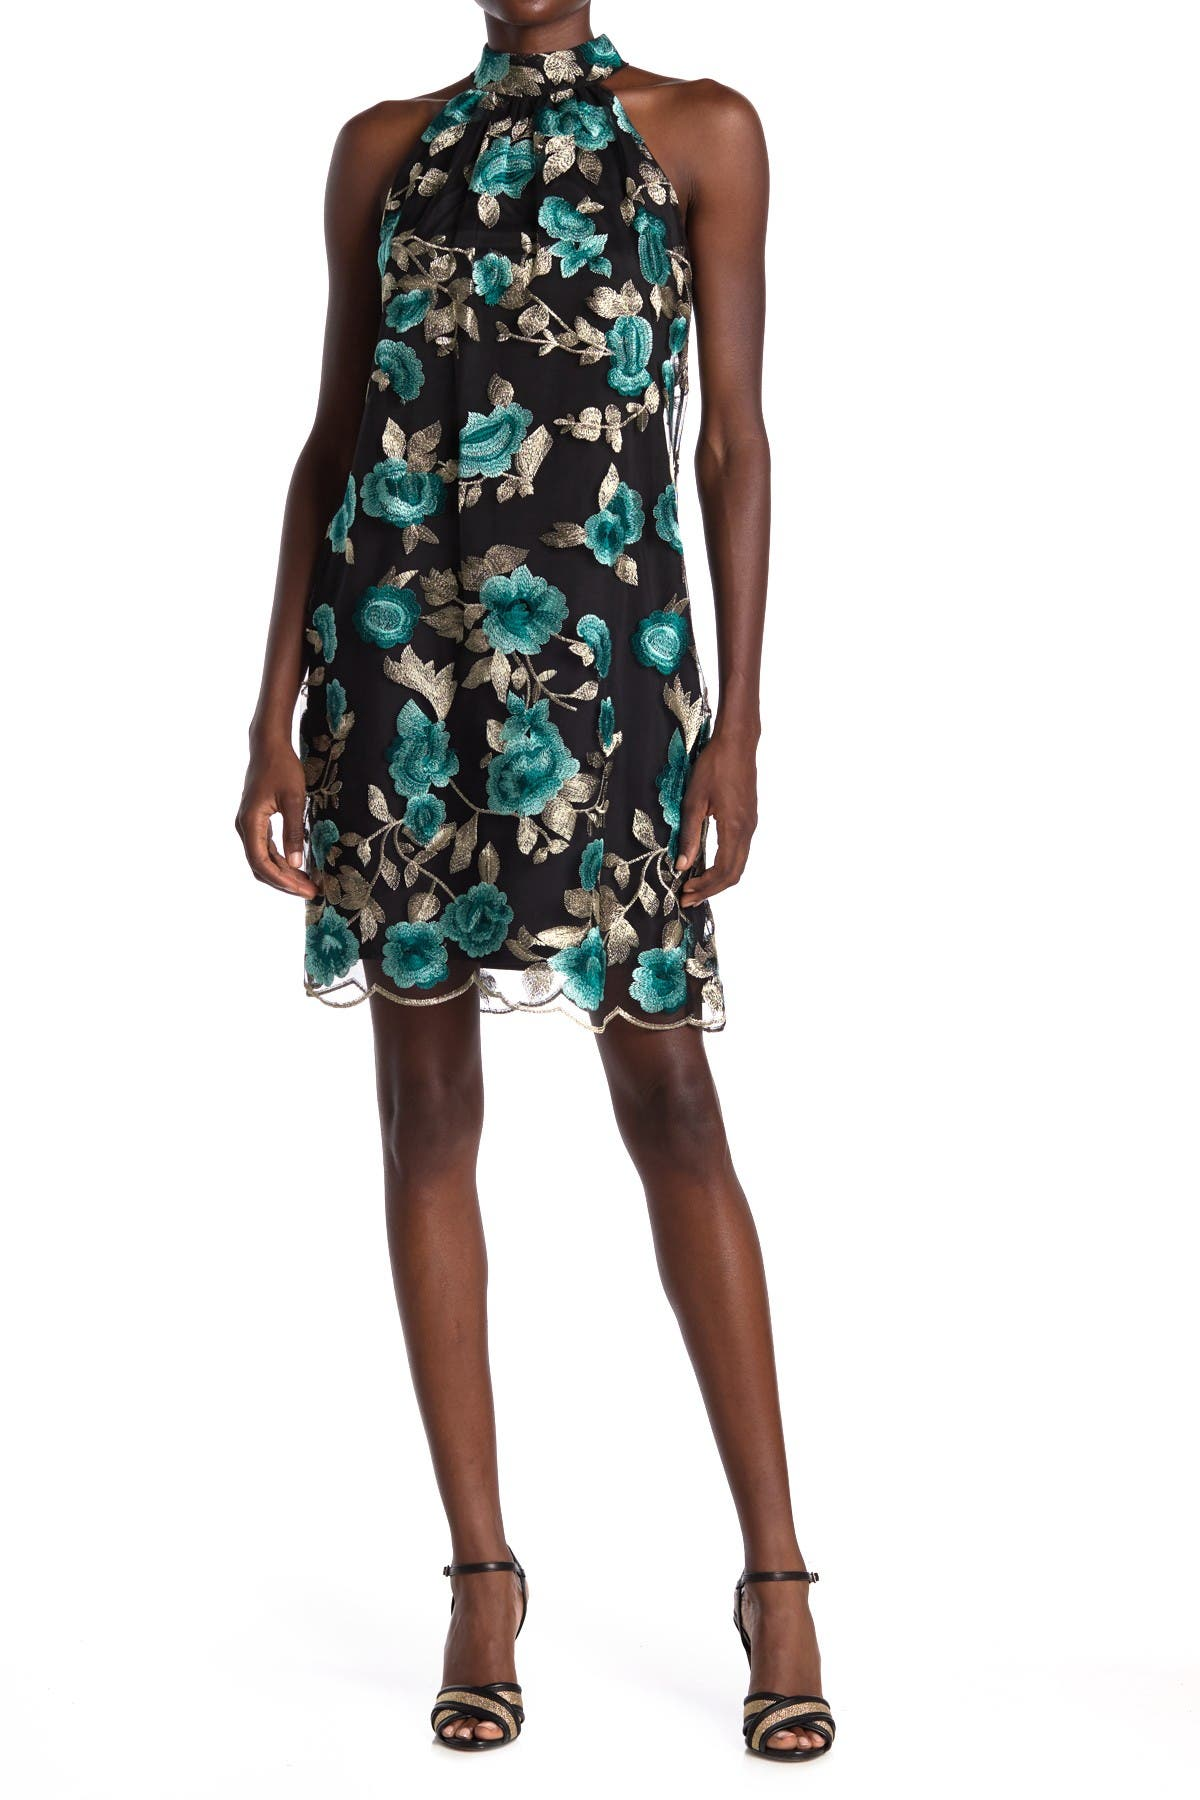 Image of trina Trina Turk Cian Floral Embroidered Scalloped Shift Dress